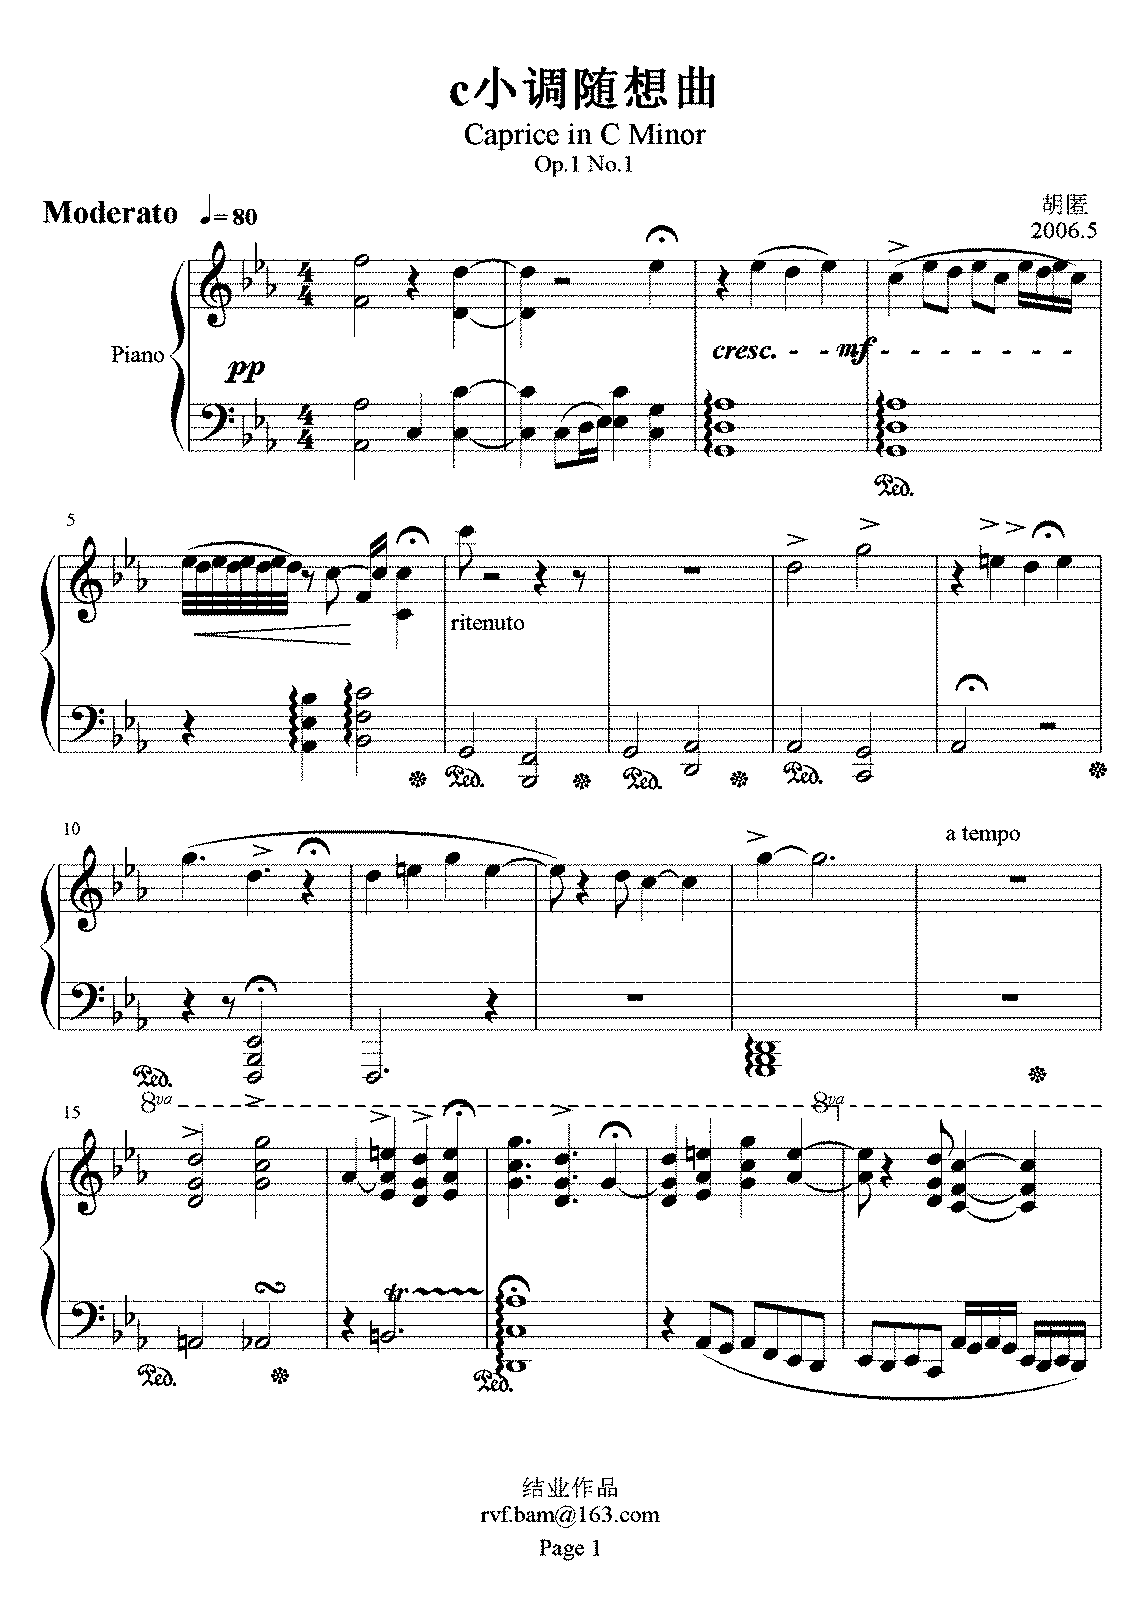 PMLP183225-Caprice in C minor Op.1 No.1.pdf